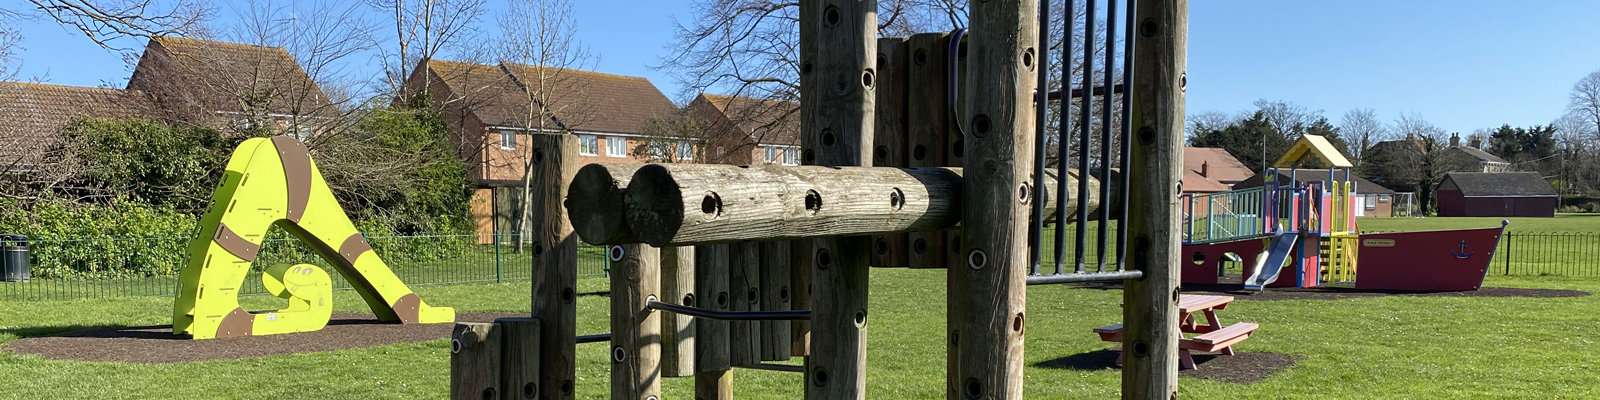 Tollesbury Parish Council, Recreational Ground Committee, Play Area